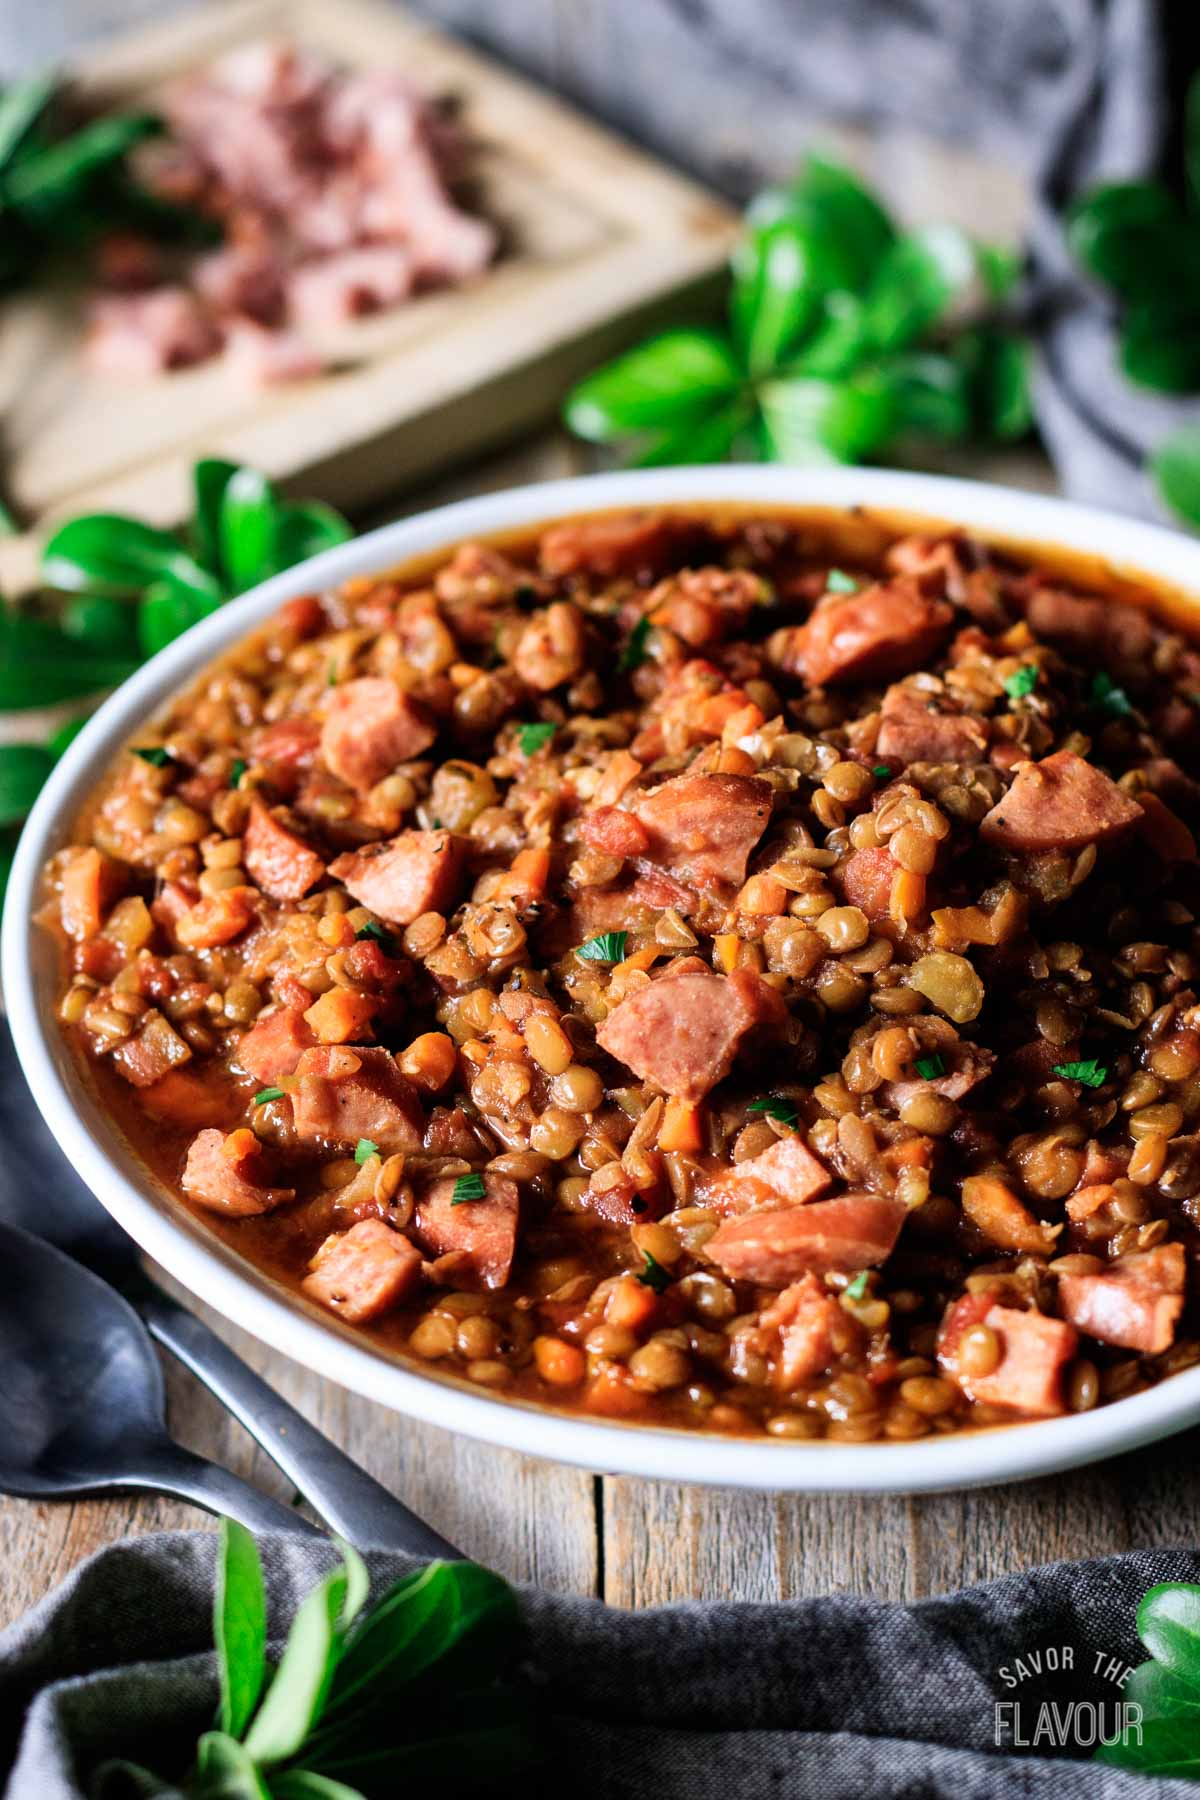 bowl of lentil stew with kielbasa sausage